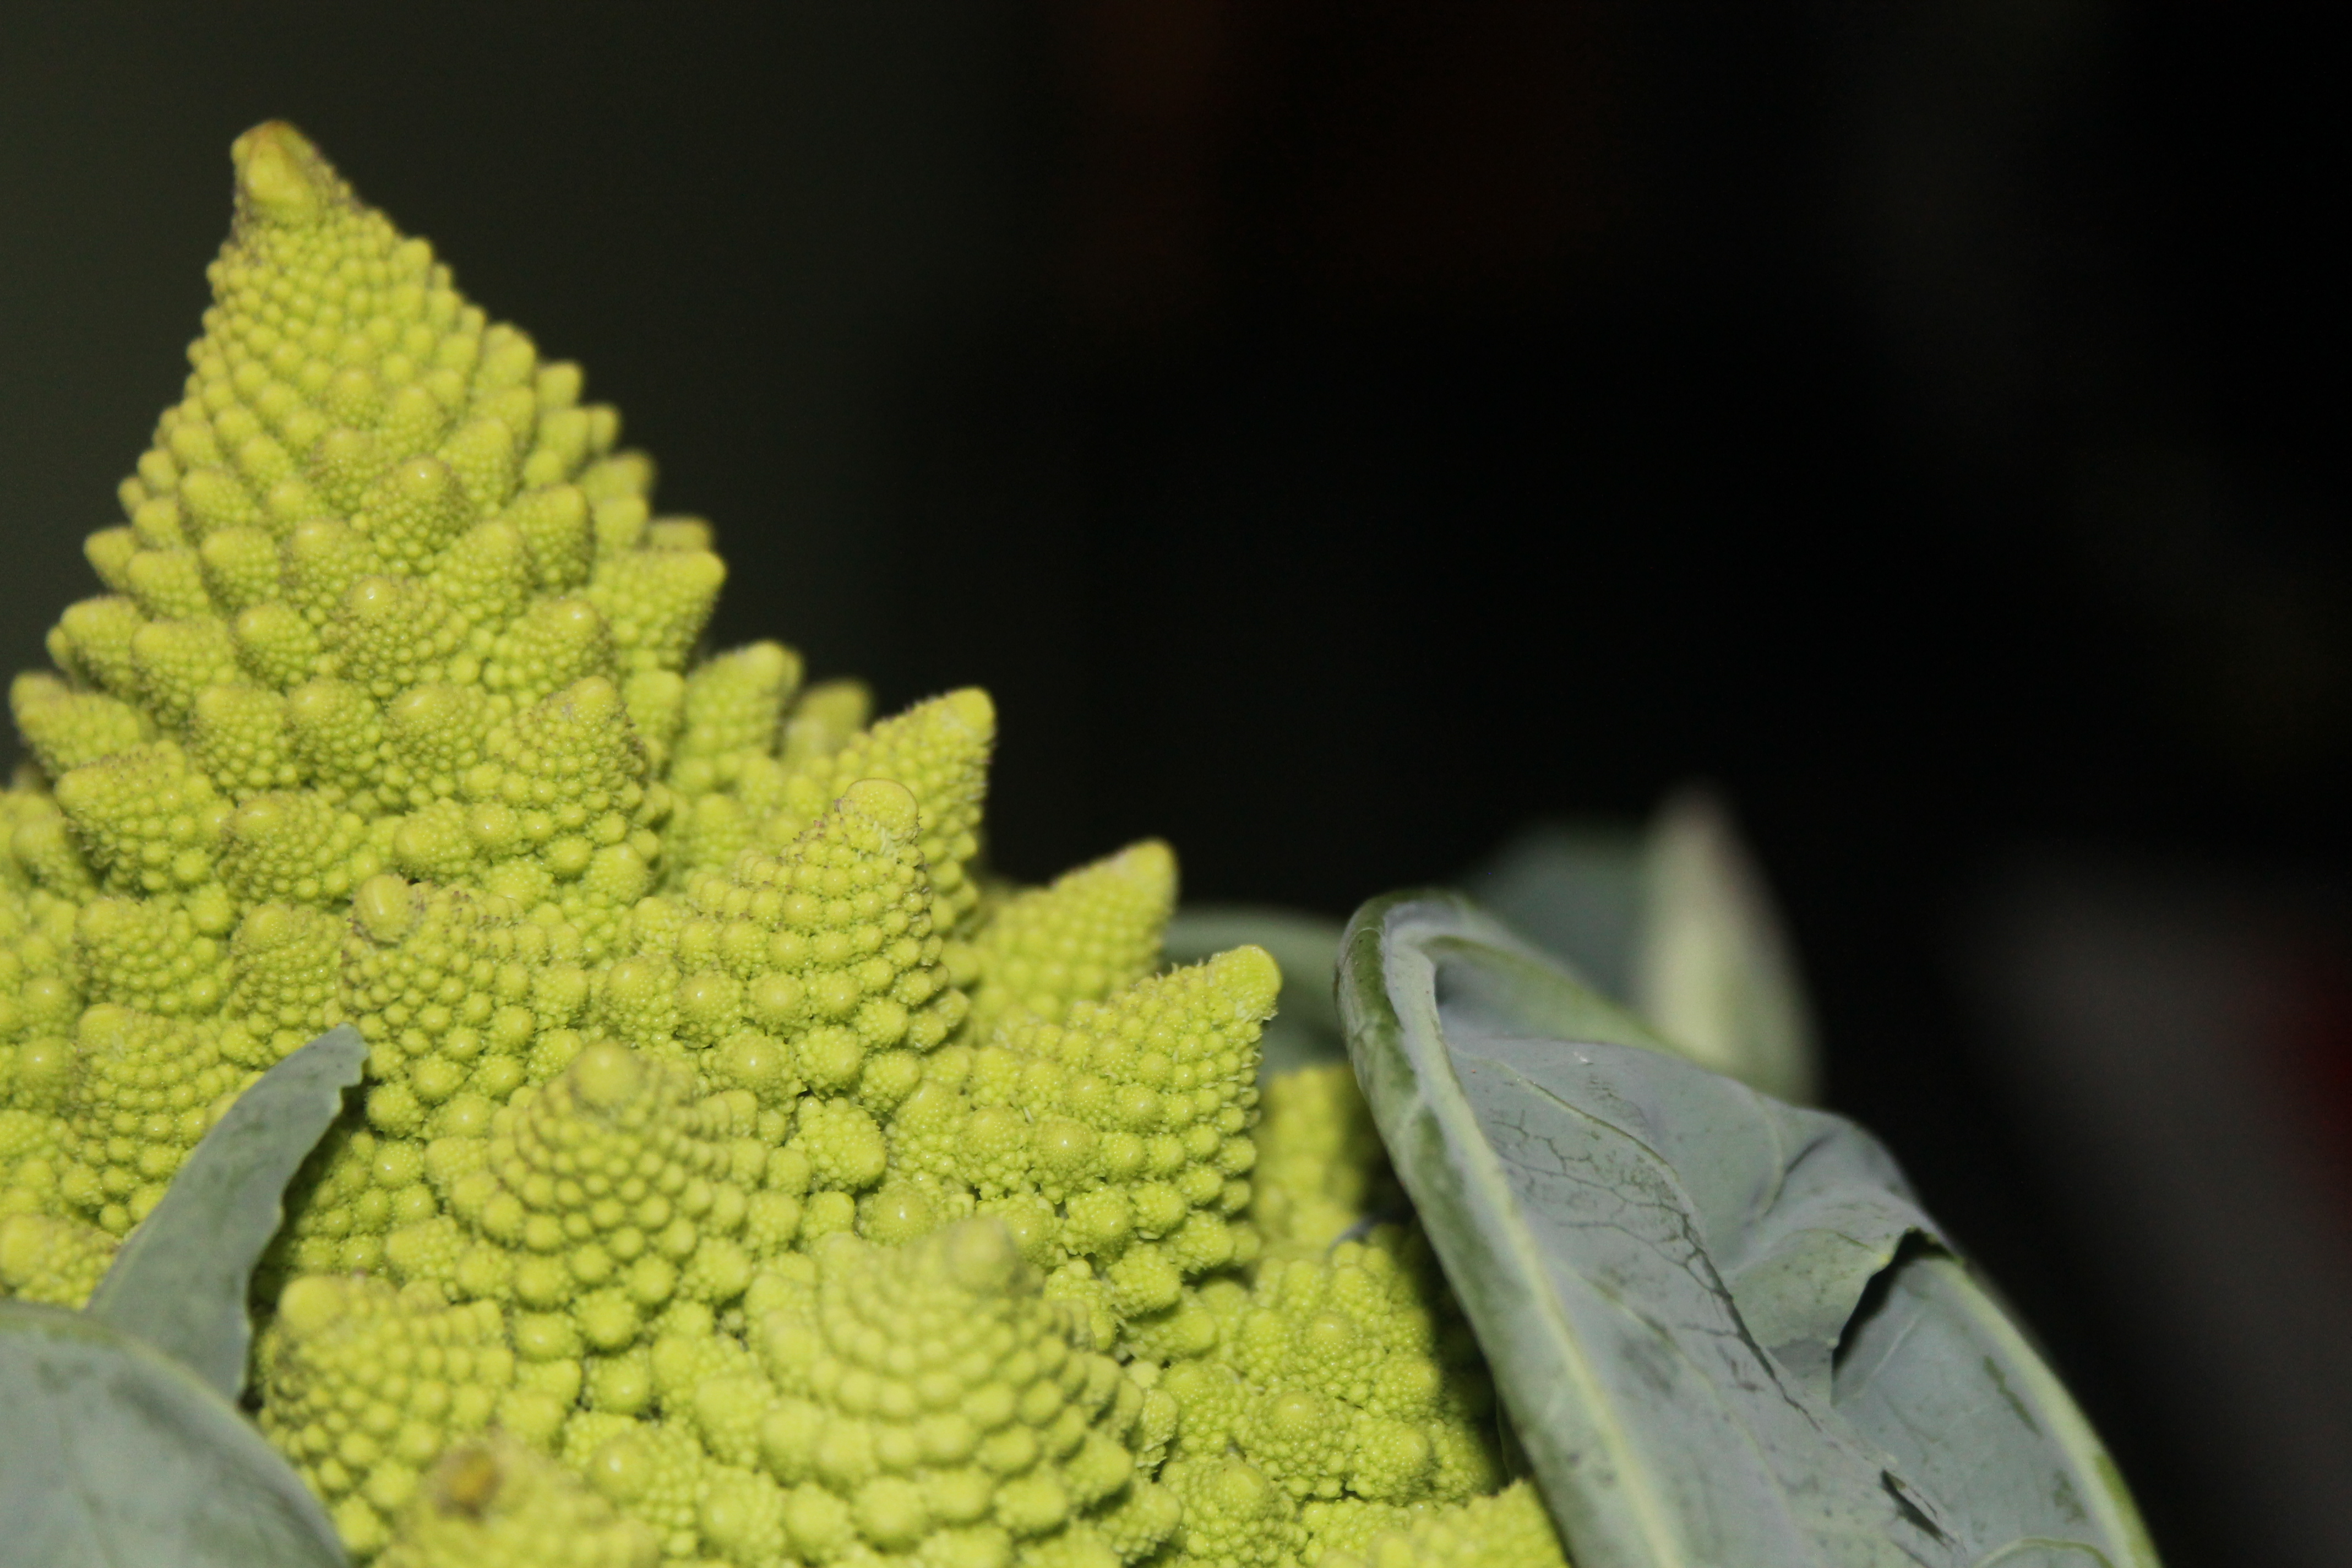 Abstraction of Romanesco Broccoli